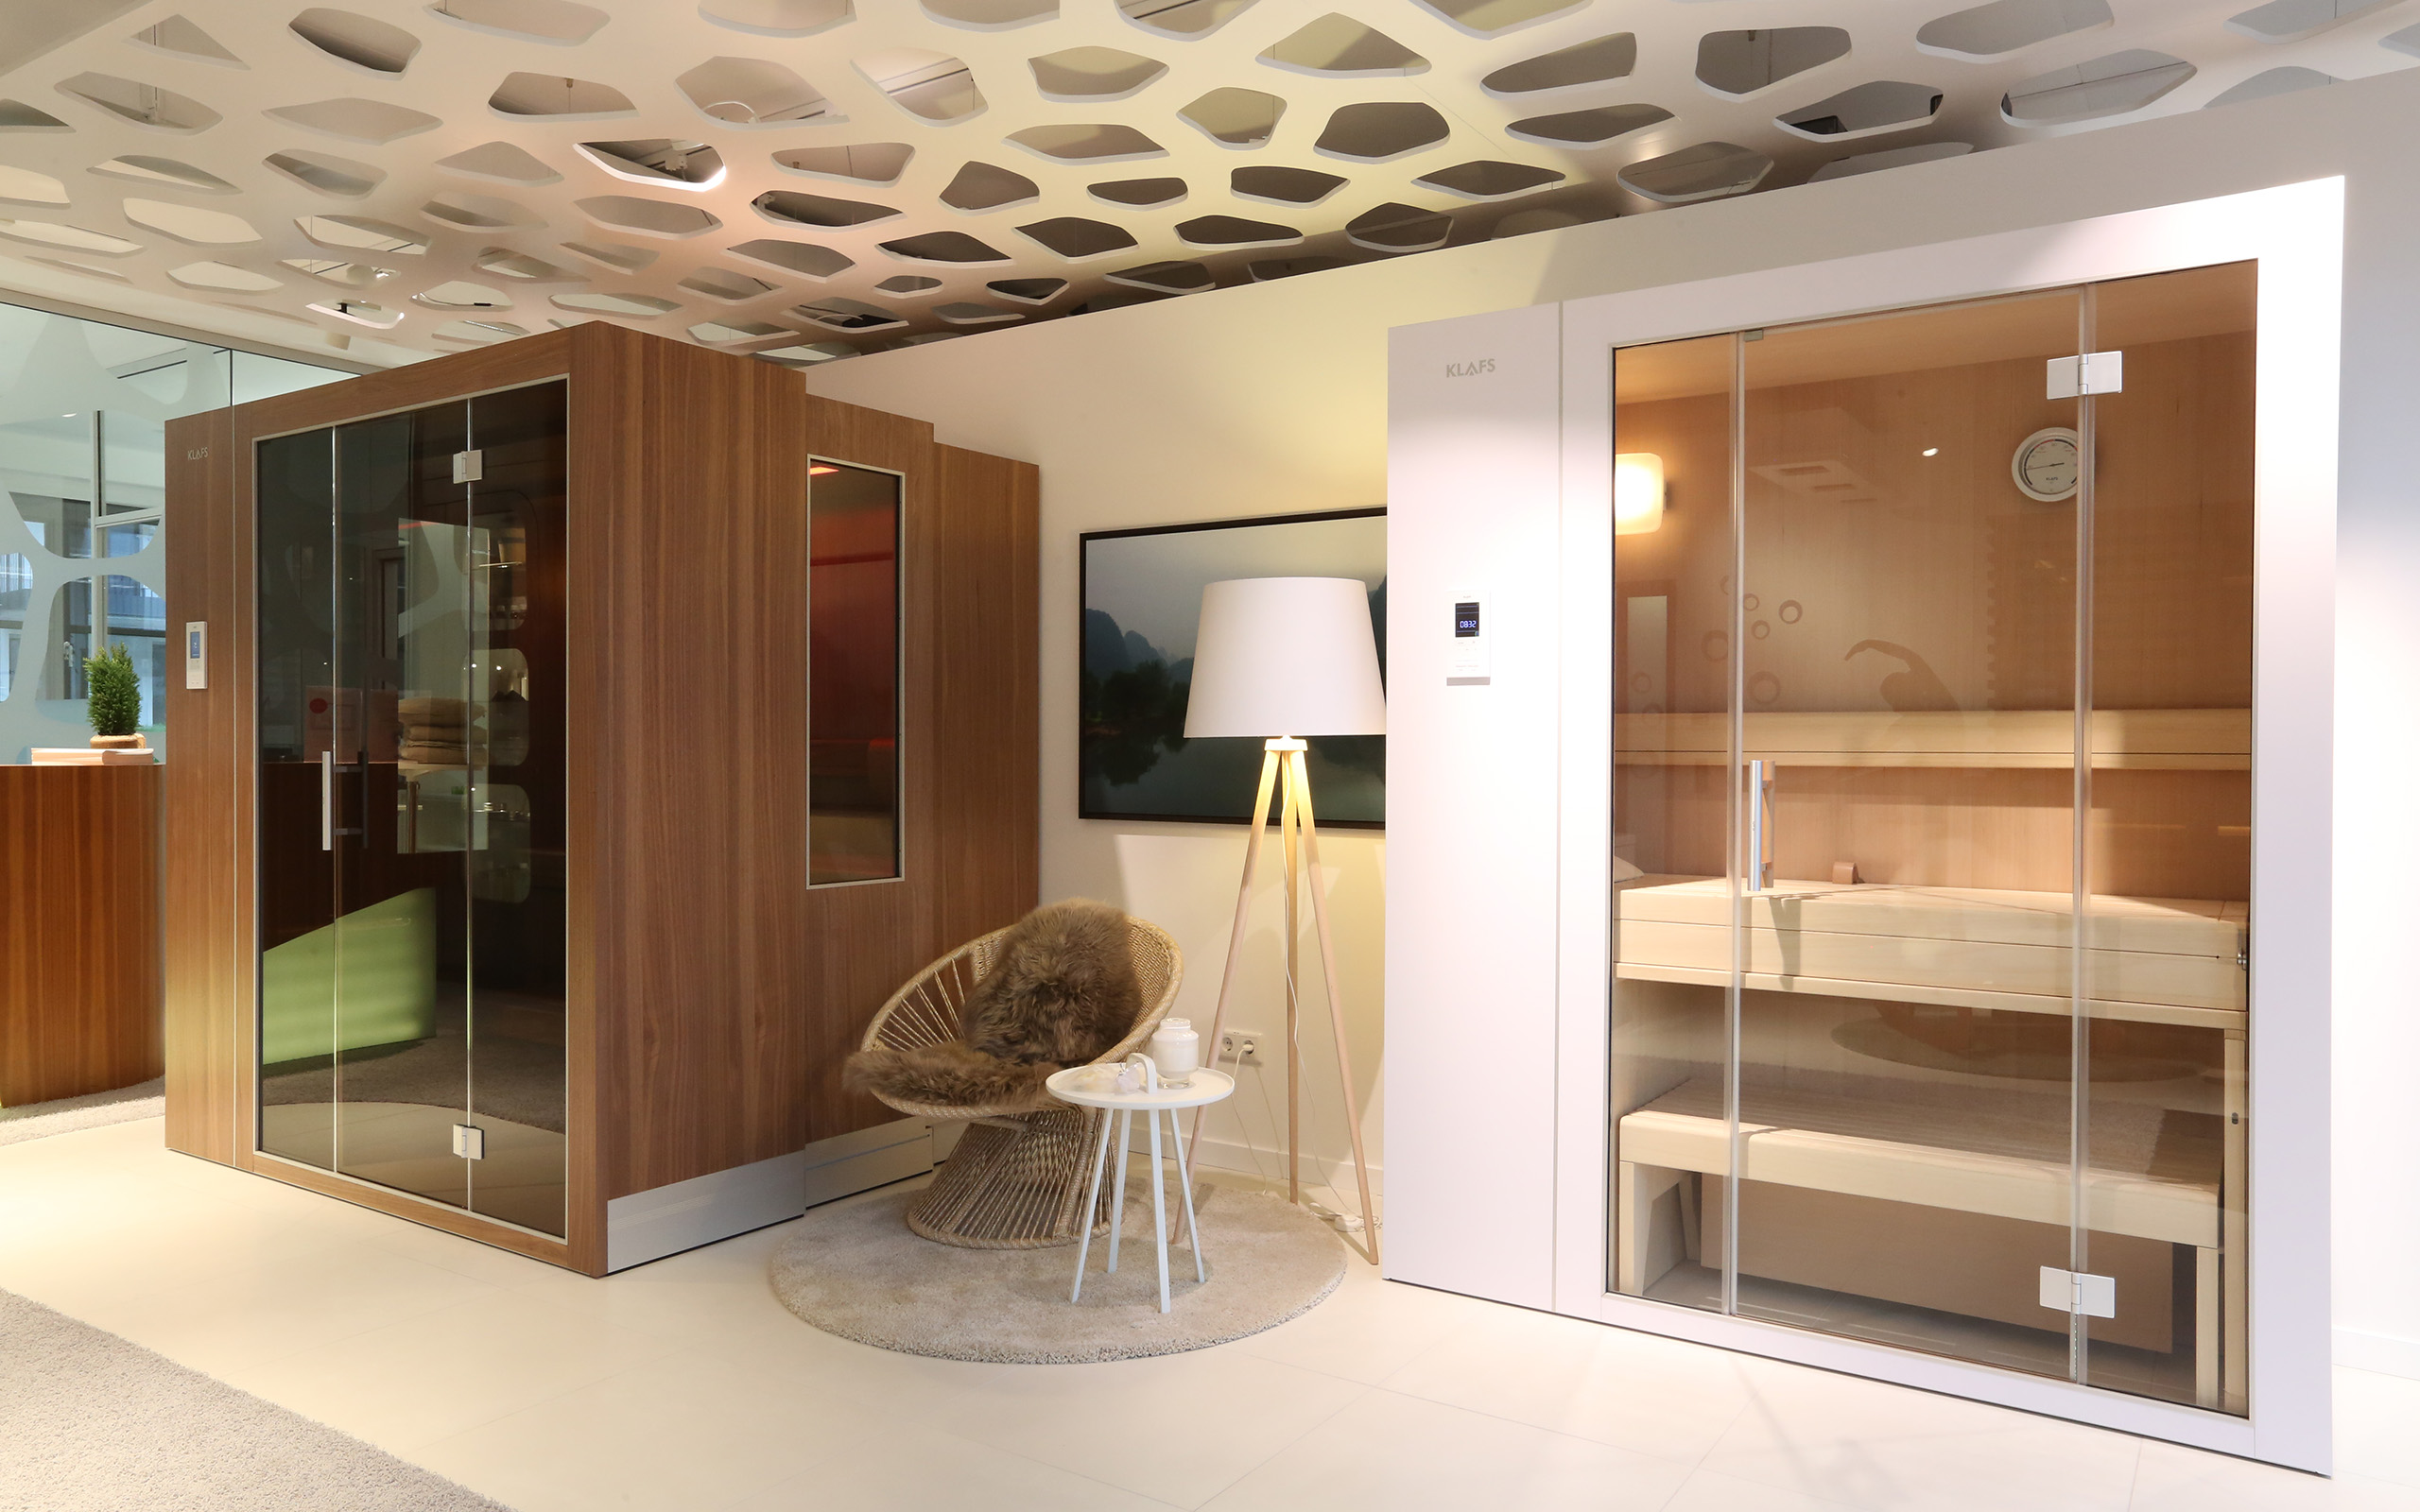 sauna showroom in frankfurt. Black Bedroom Furniture Sets. Home Design Ideas